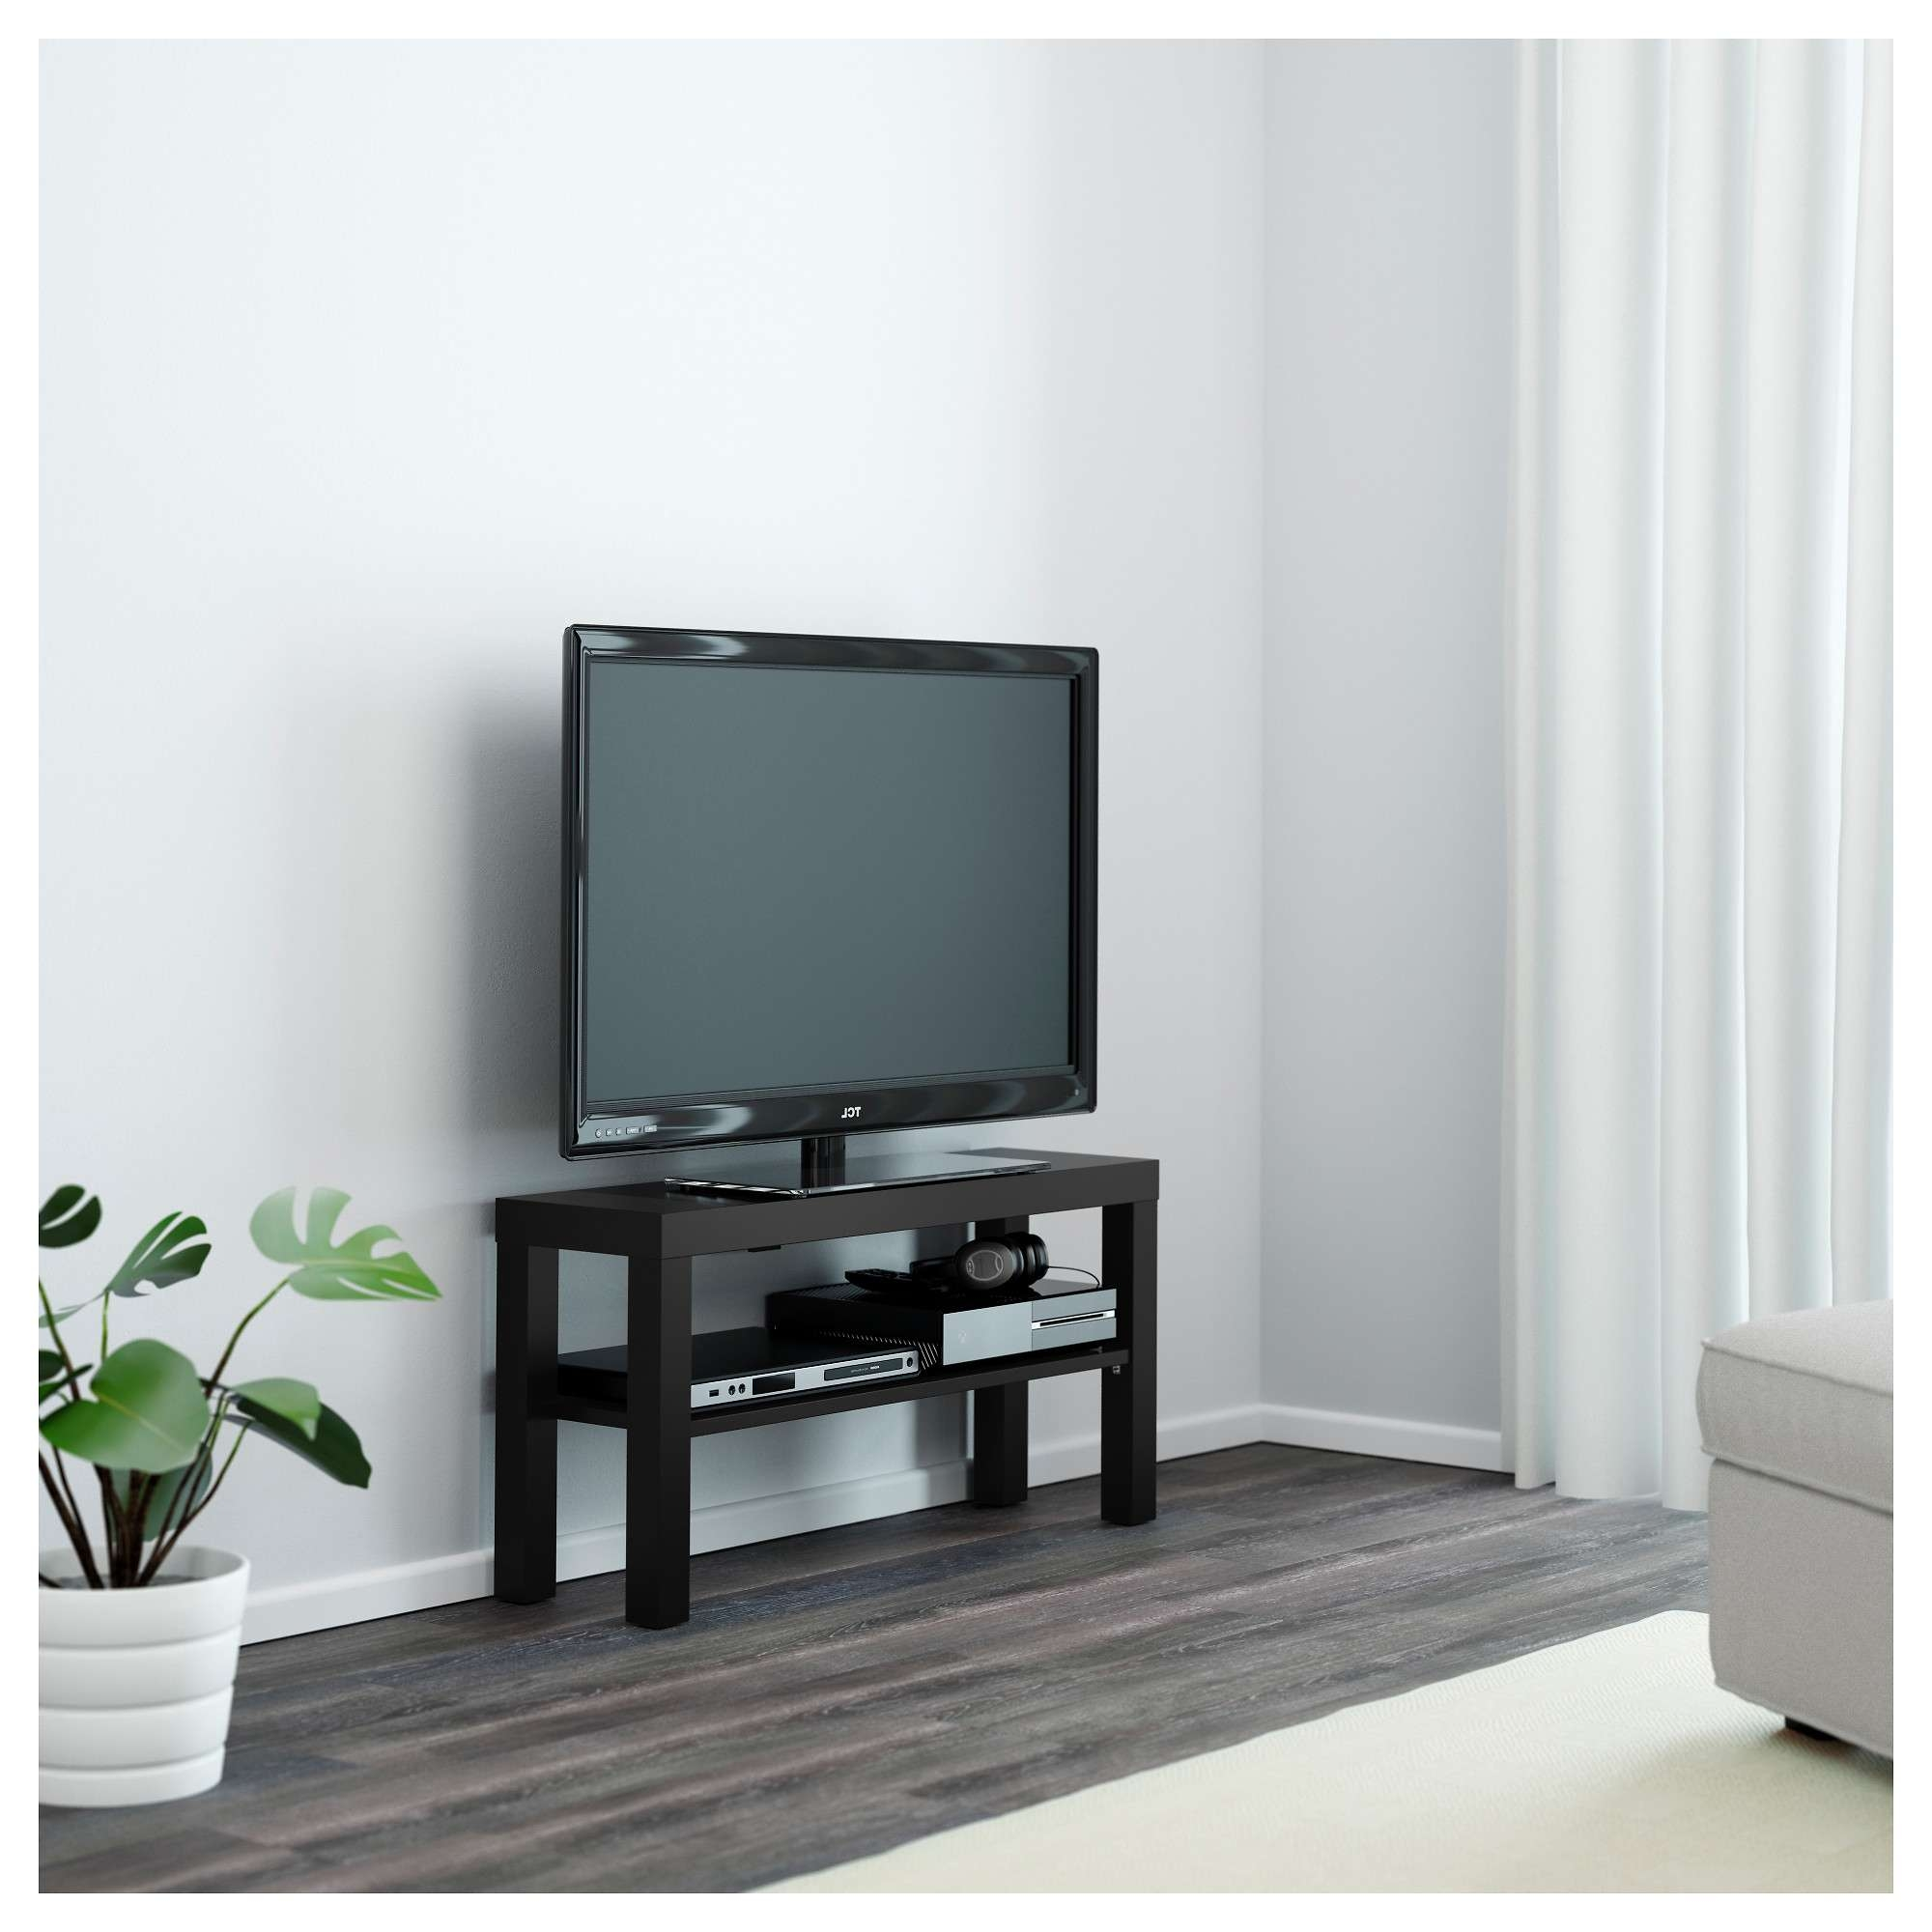 Lack Tv Bench Black 90x26 Cm – Ikea Pertaining To Bench Tv Stands (View 14 of 15)